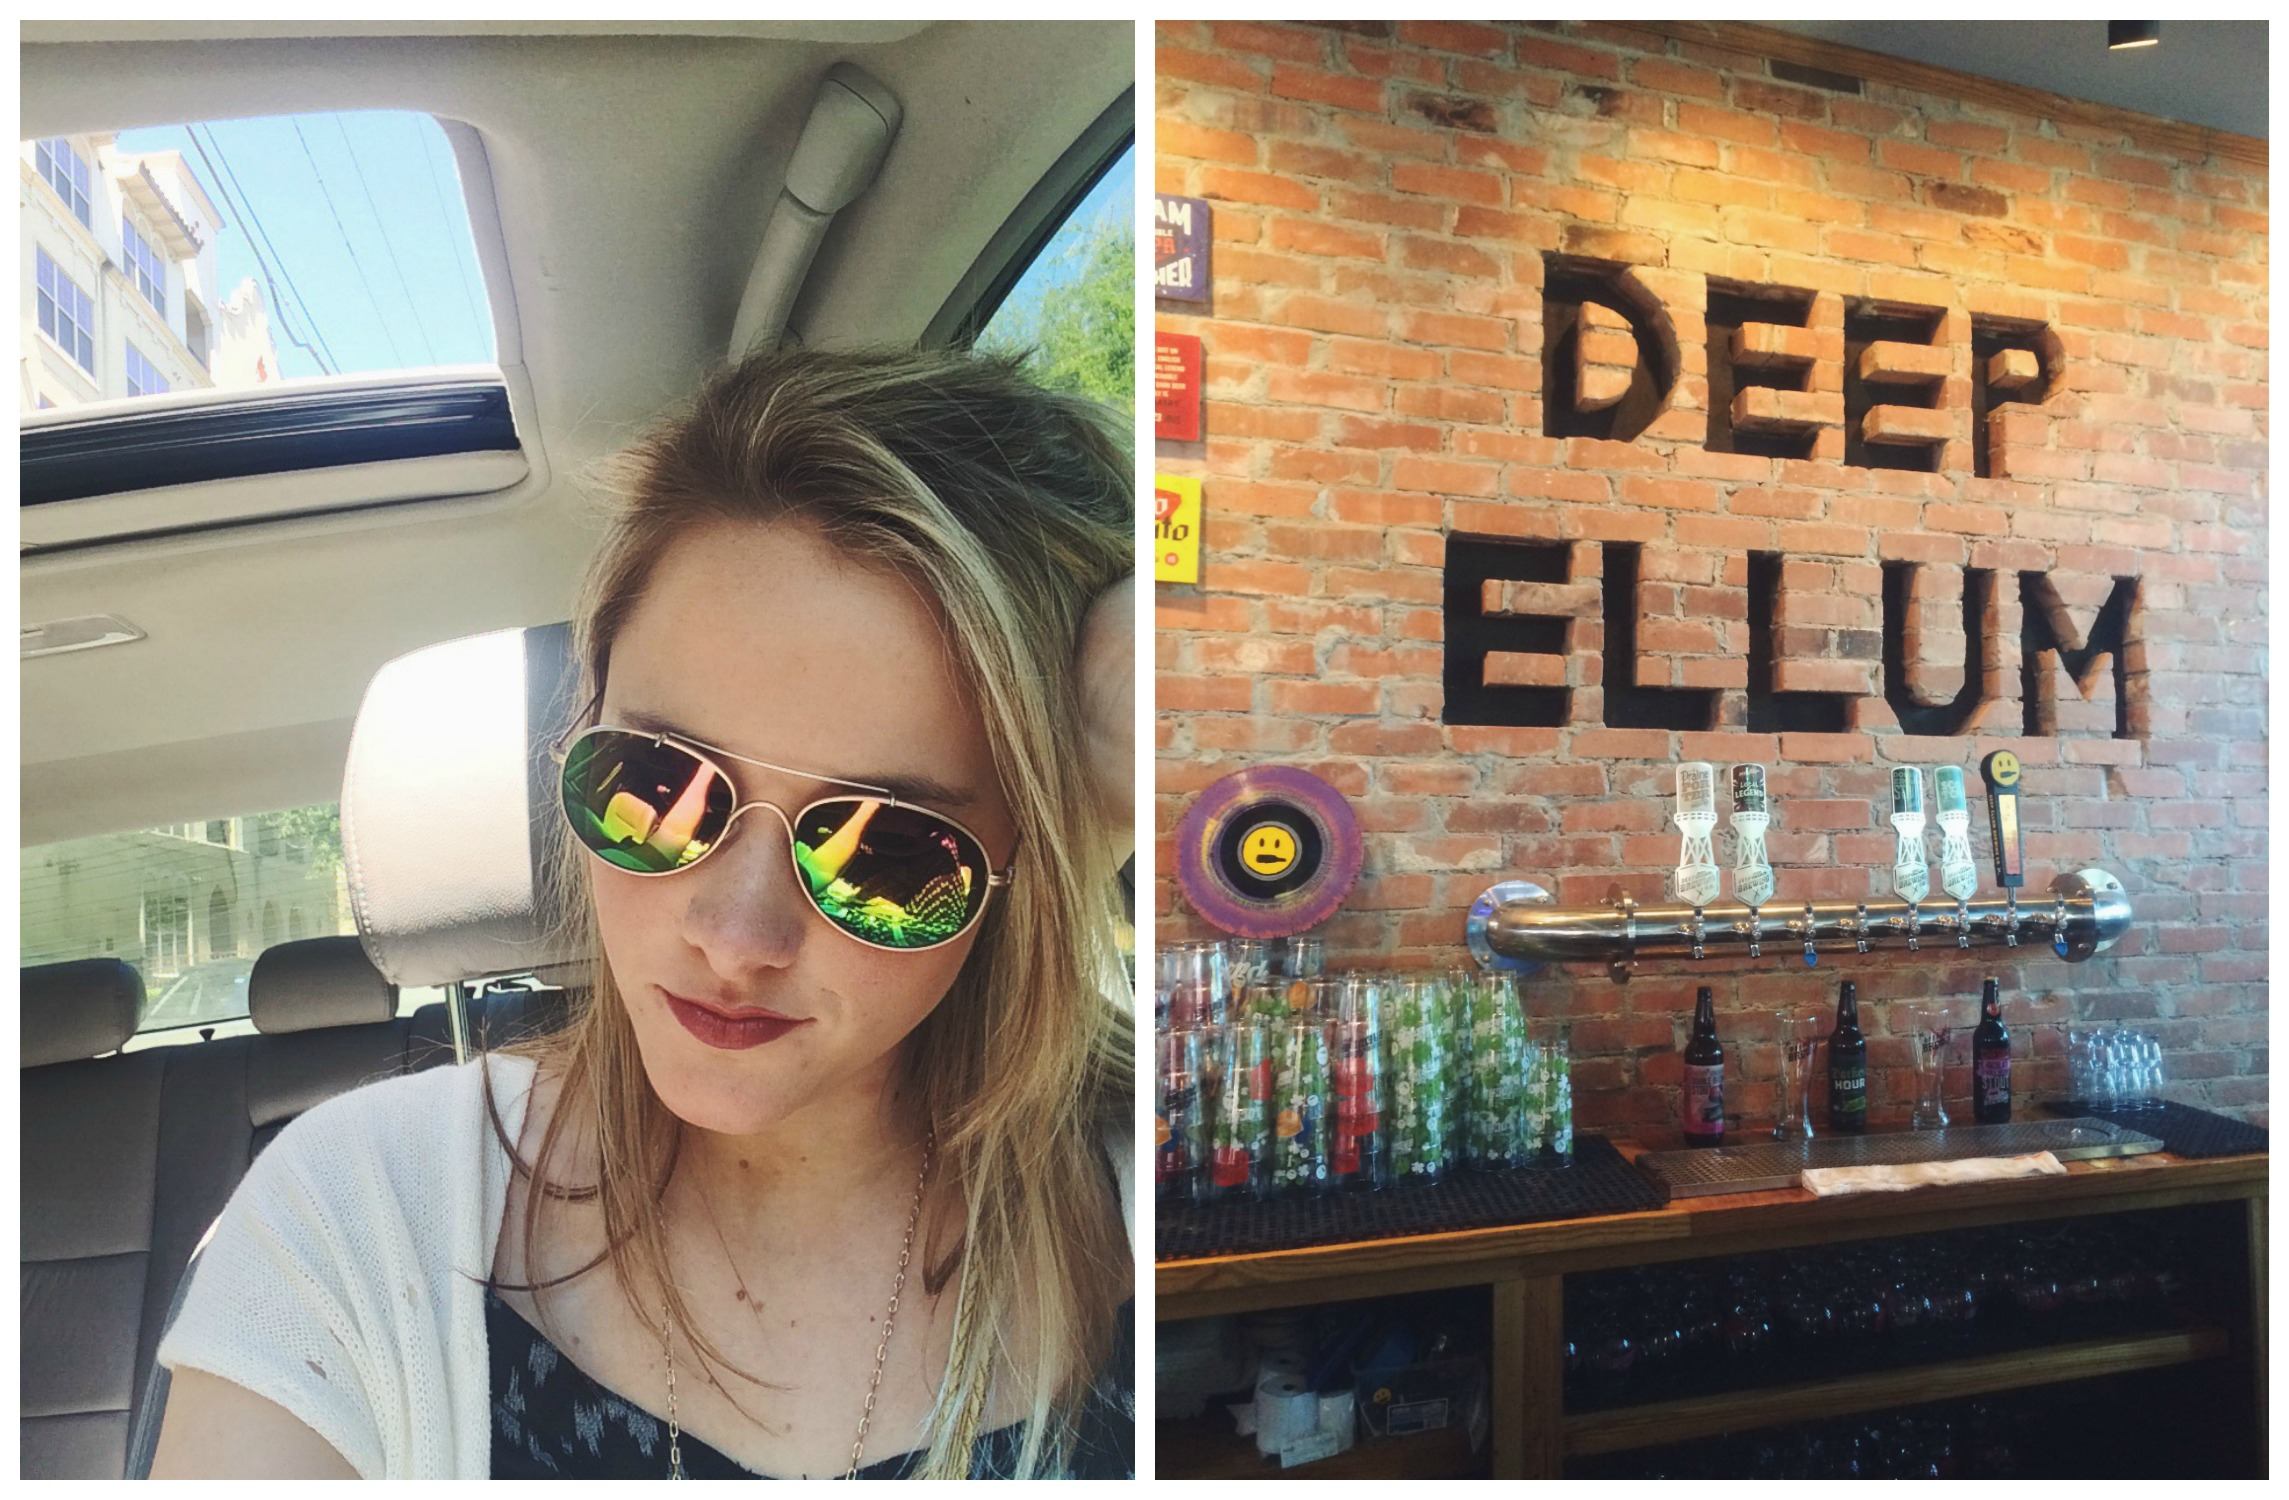 Sun Roof Weather & Deep Ellum Brewery